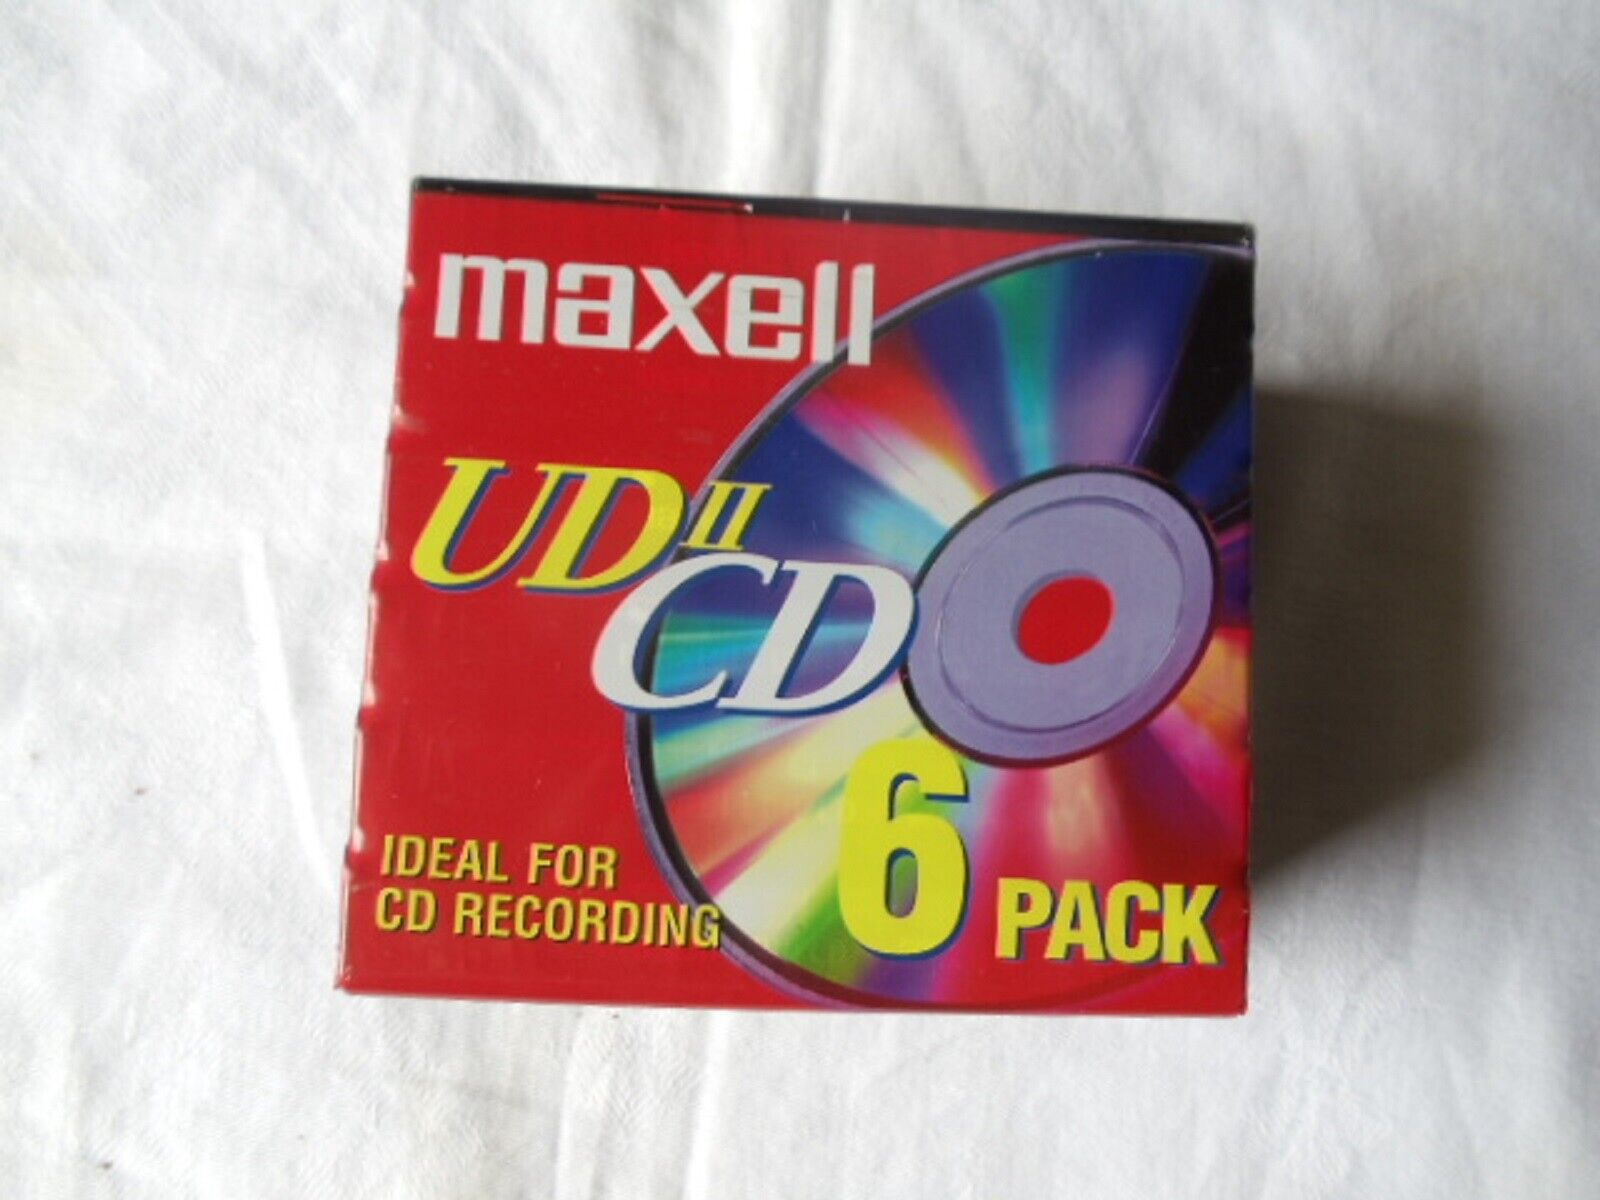 MAXELL  UDII CD-6 PACK-HIGH BIAS AUDIO CASSETTES-74 MINUTES